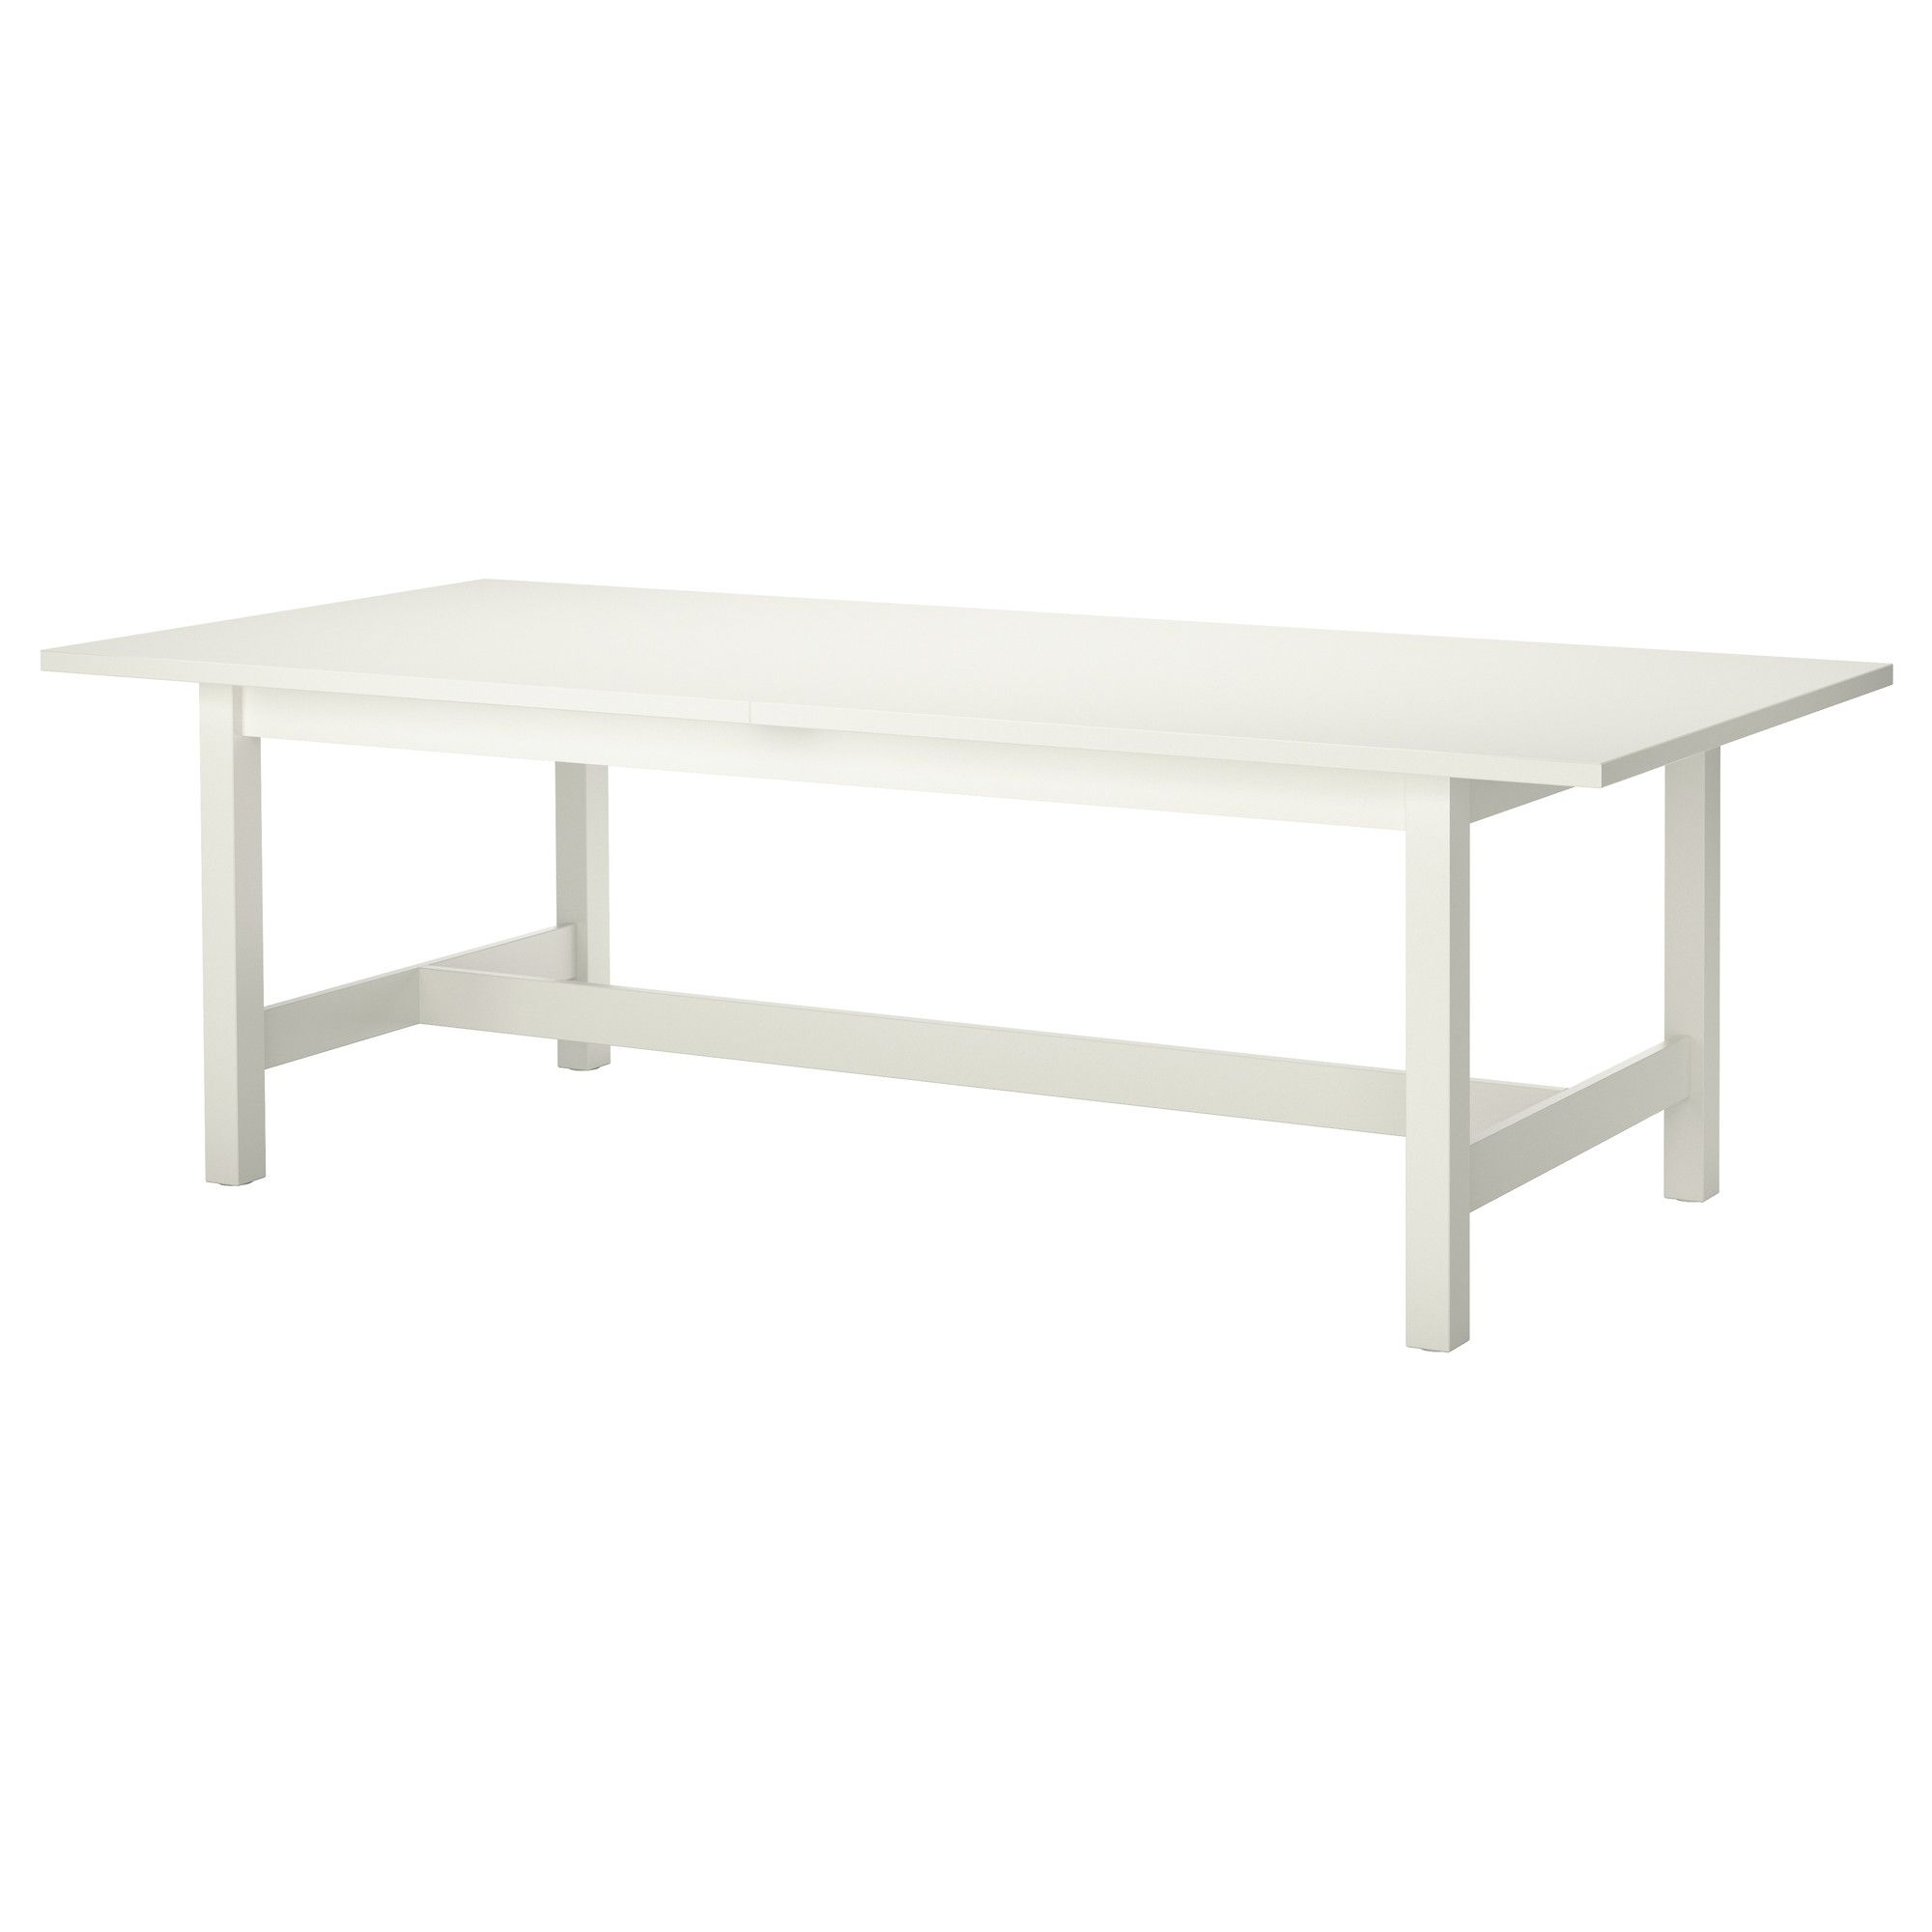 Witte Tafel Van Ikea.Smalle Tafel Ikea Trendy Tuinset Ikea Falster Persoons With Smalle